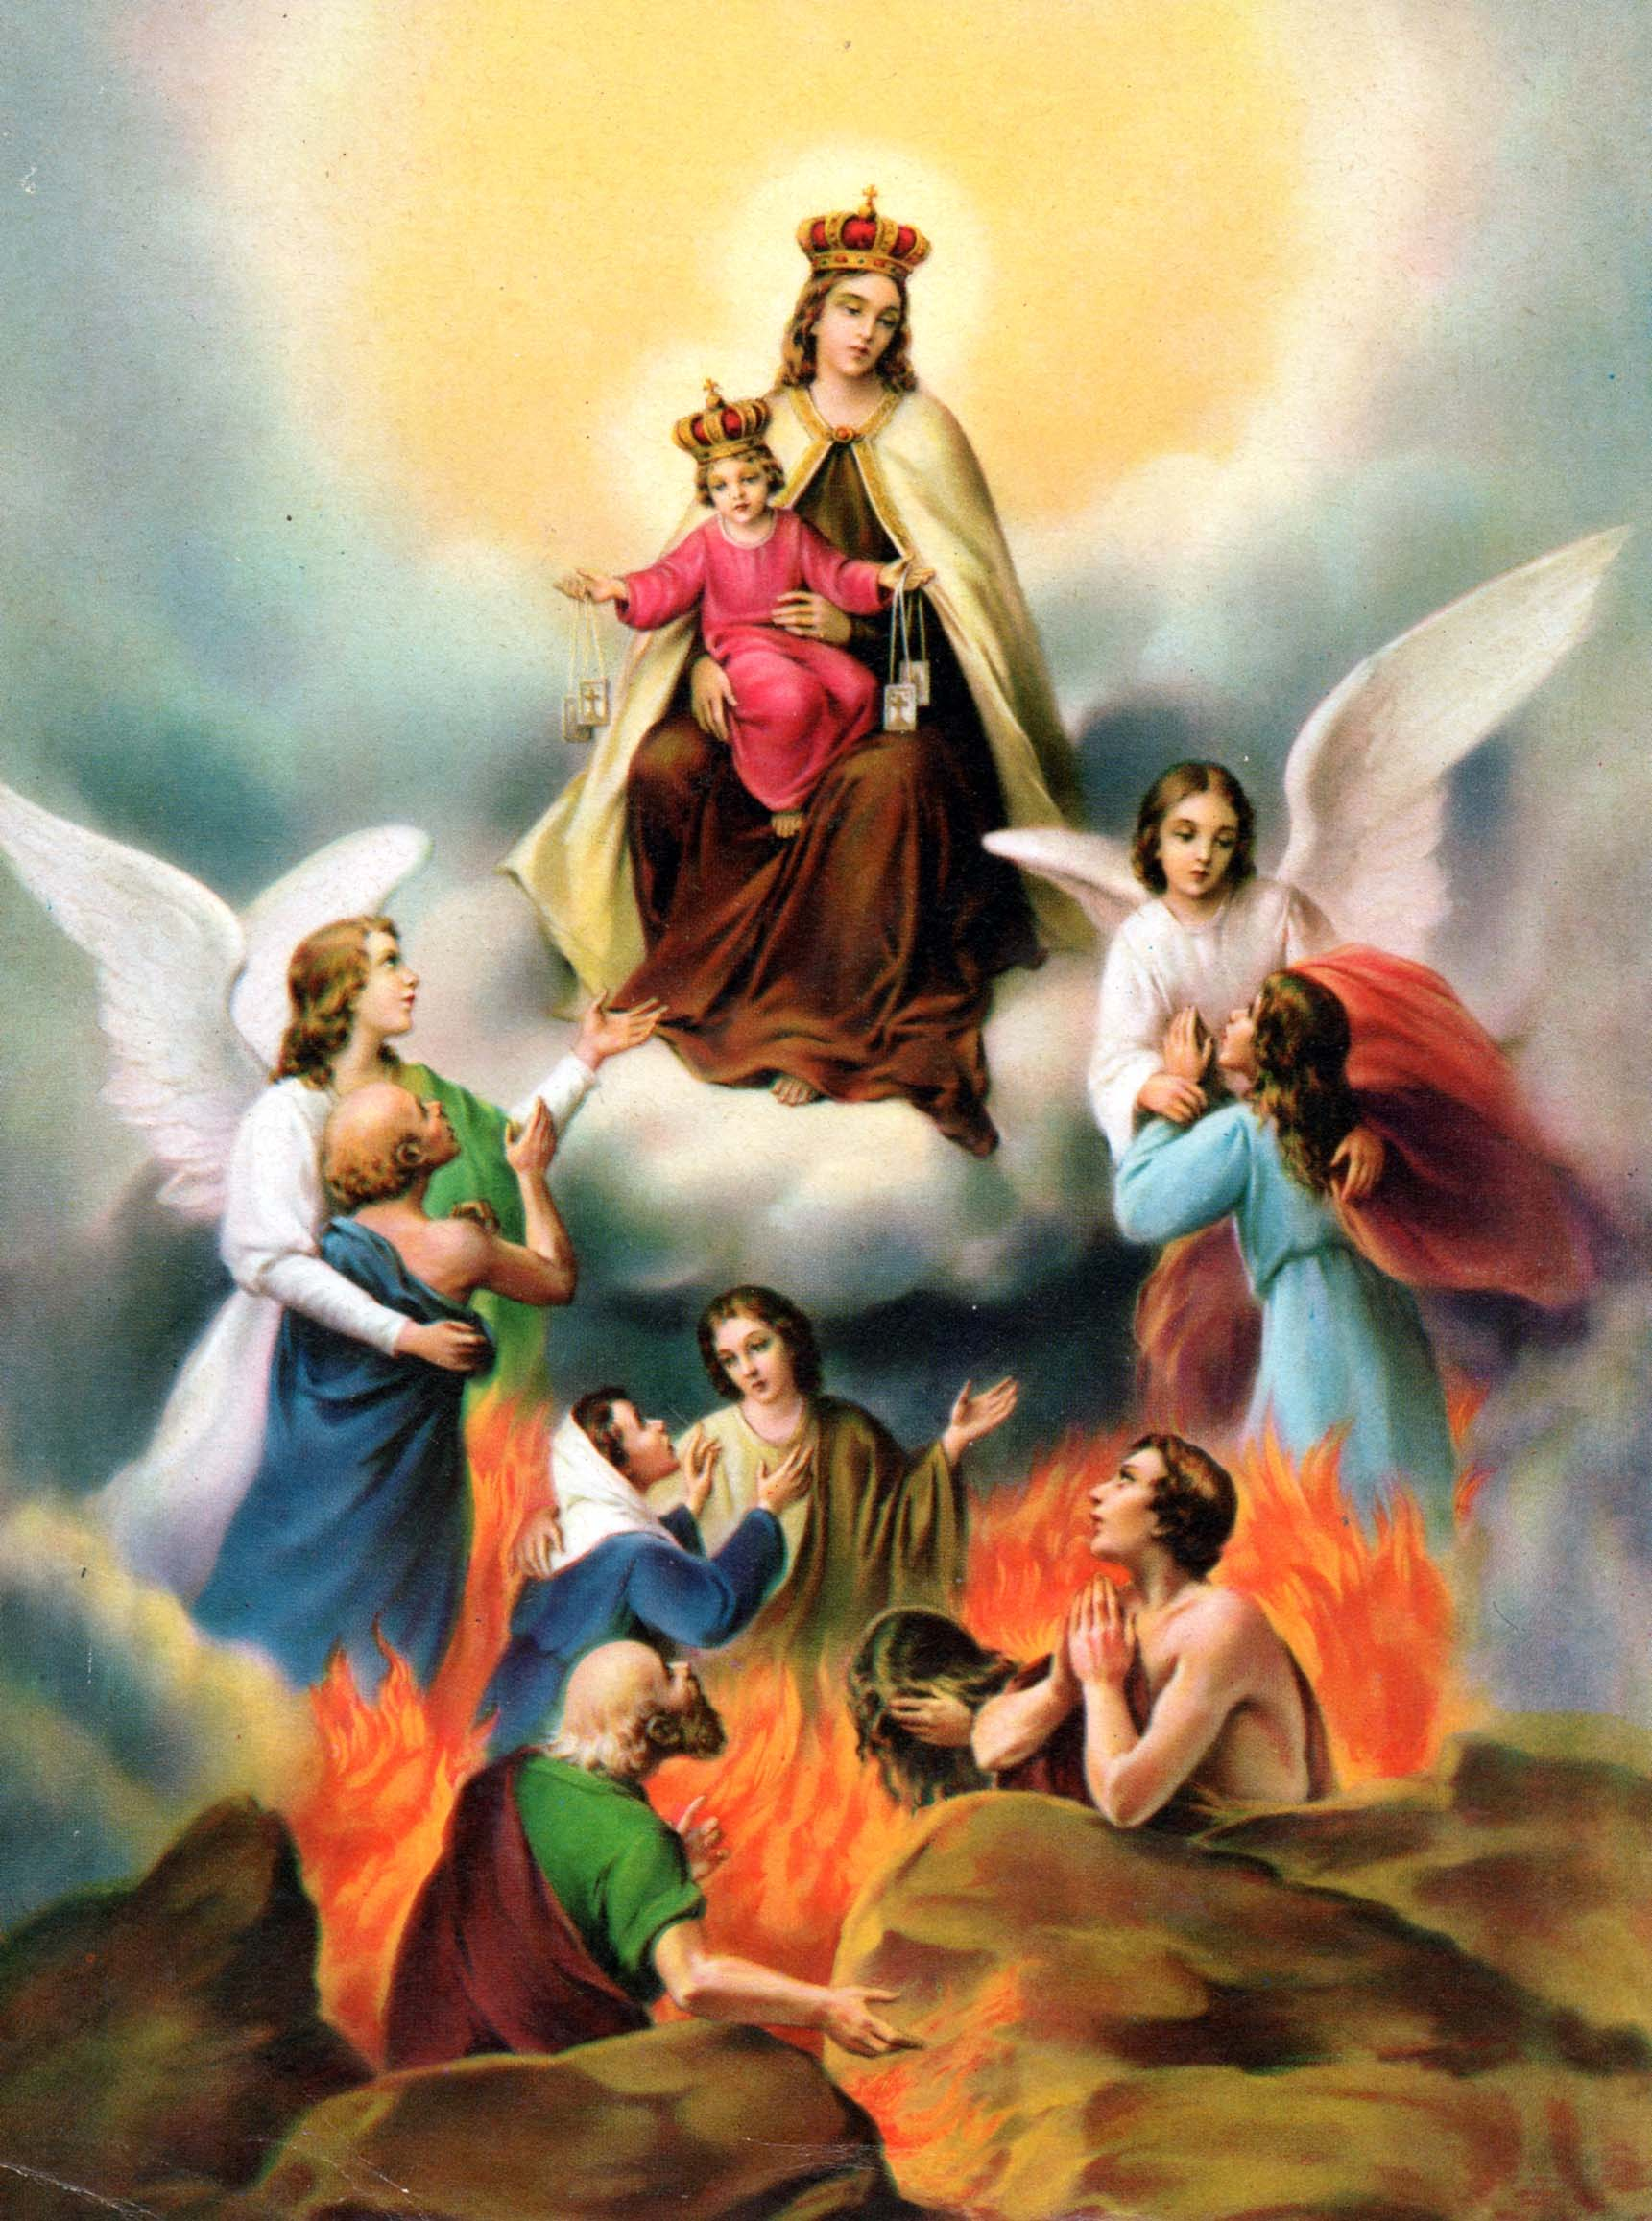 "<a href=""https://www.palmarianchurch.org/wp-content/uploads/2018/11/Extract-9th-Apostolic-Letter-of-Pope-Peter-III.pdf"" title=""Extract of the Nineth Apostolic Letter of His Holiness Pope Peter III on the Holy Souls of Purgatory""><i>Extract of the Ninth Apostolic Letter of His Holiness Pope Peter III on the Holy Souls of Purgatory</i><br><br>See more</a>"